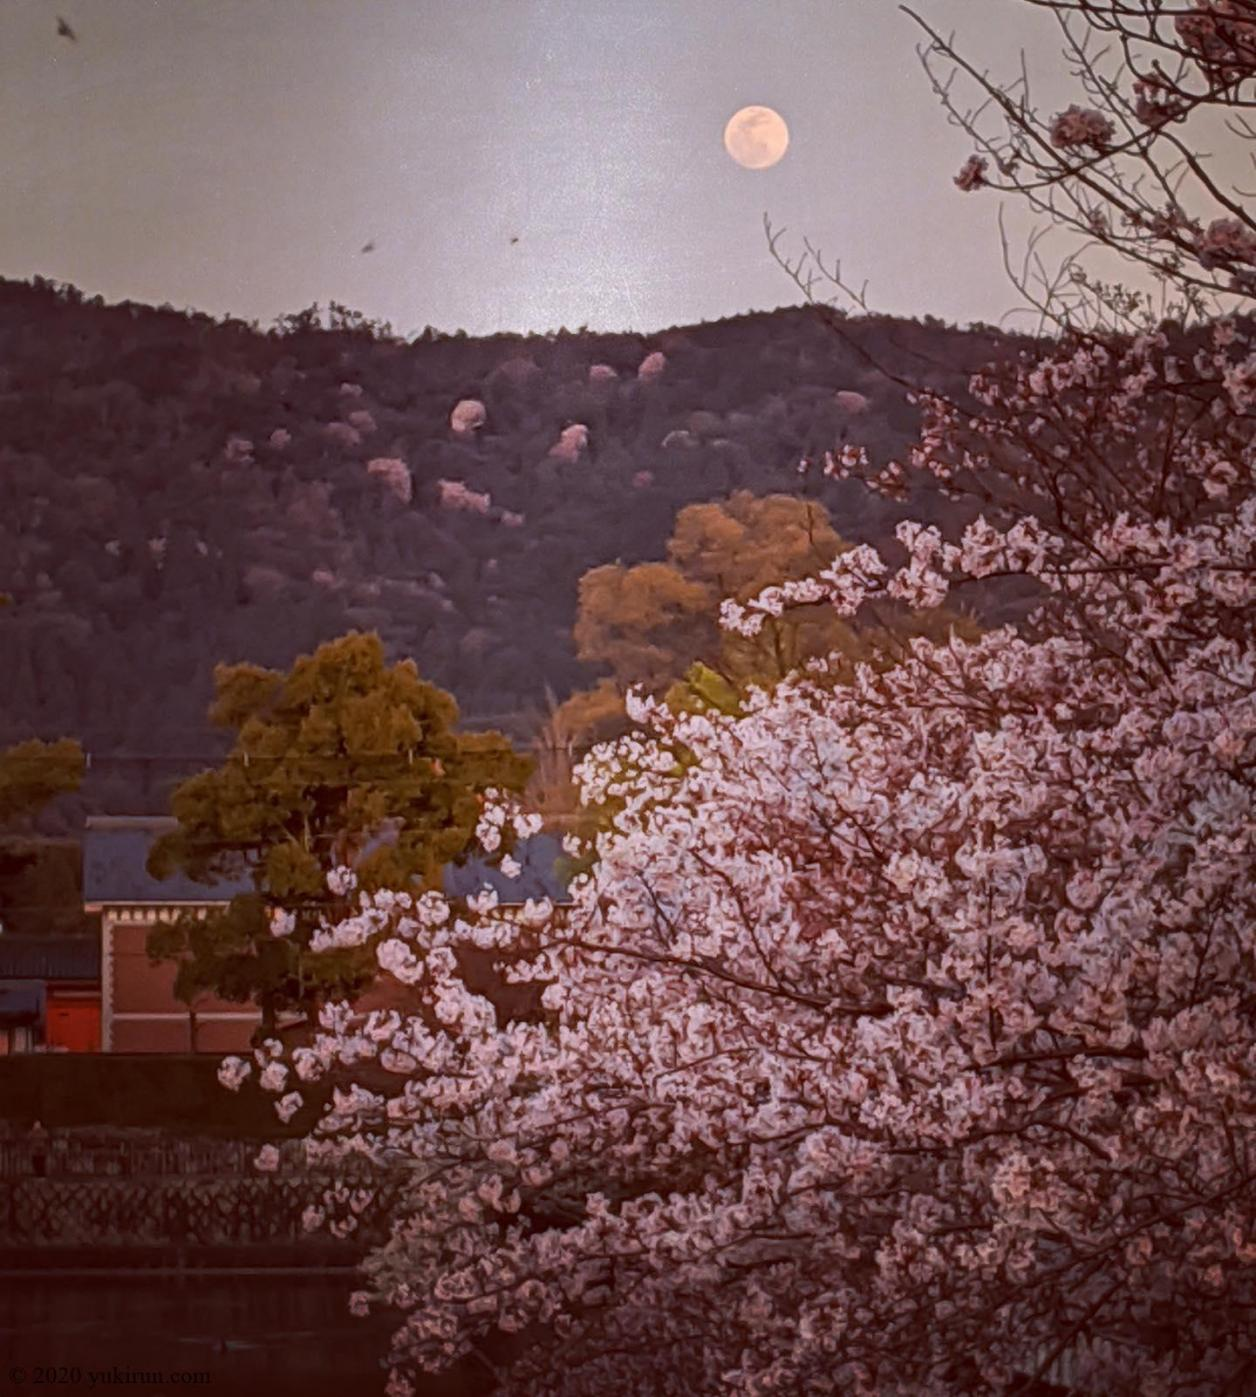 #fullmoon and #sakura ... so #beautiful ! #kyoto #japan #cherryblossom #pixel3